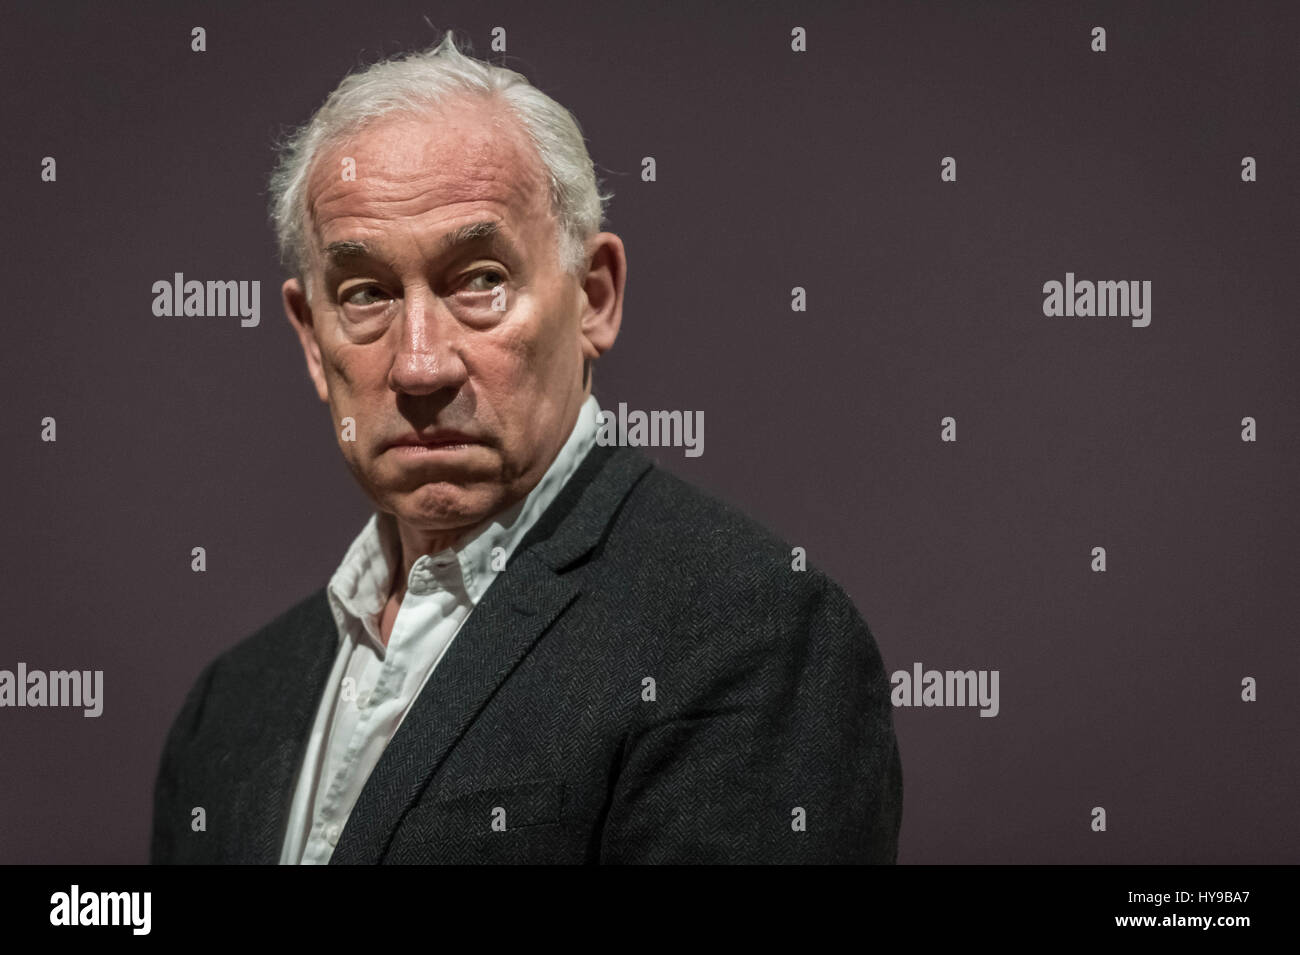 Simon Callow (67), CBE. English actor, musician, writer, and theatre director. Photographed in London, UK. - Stock Image